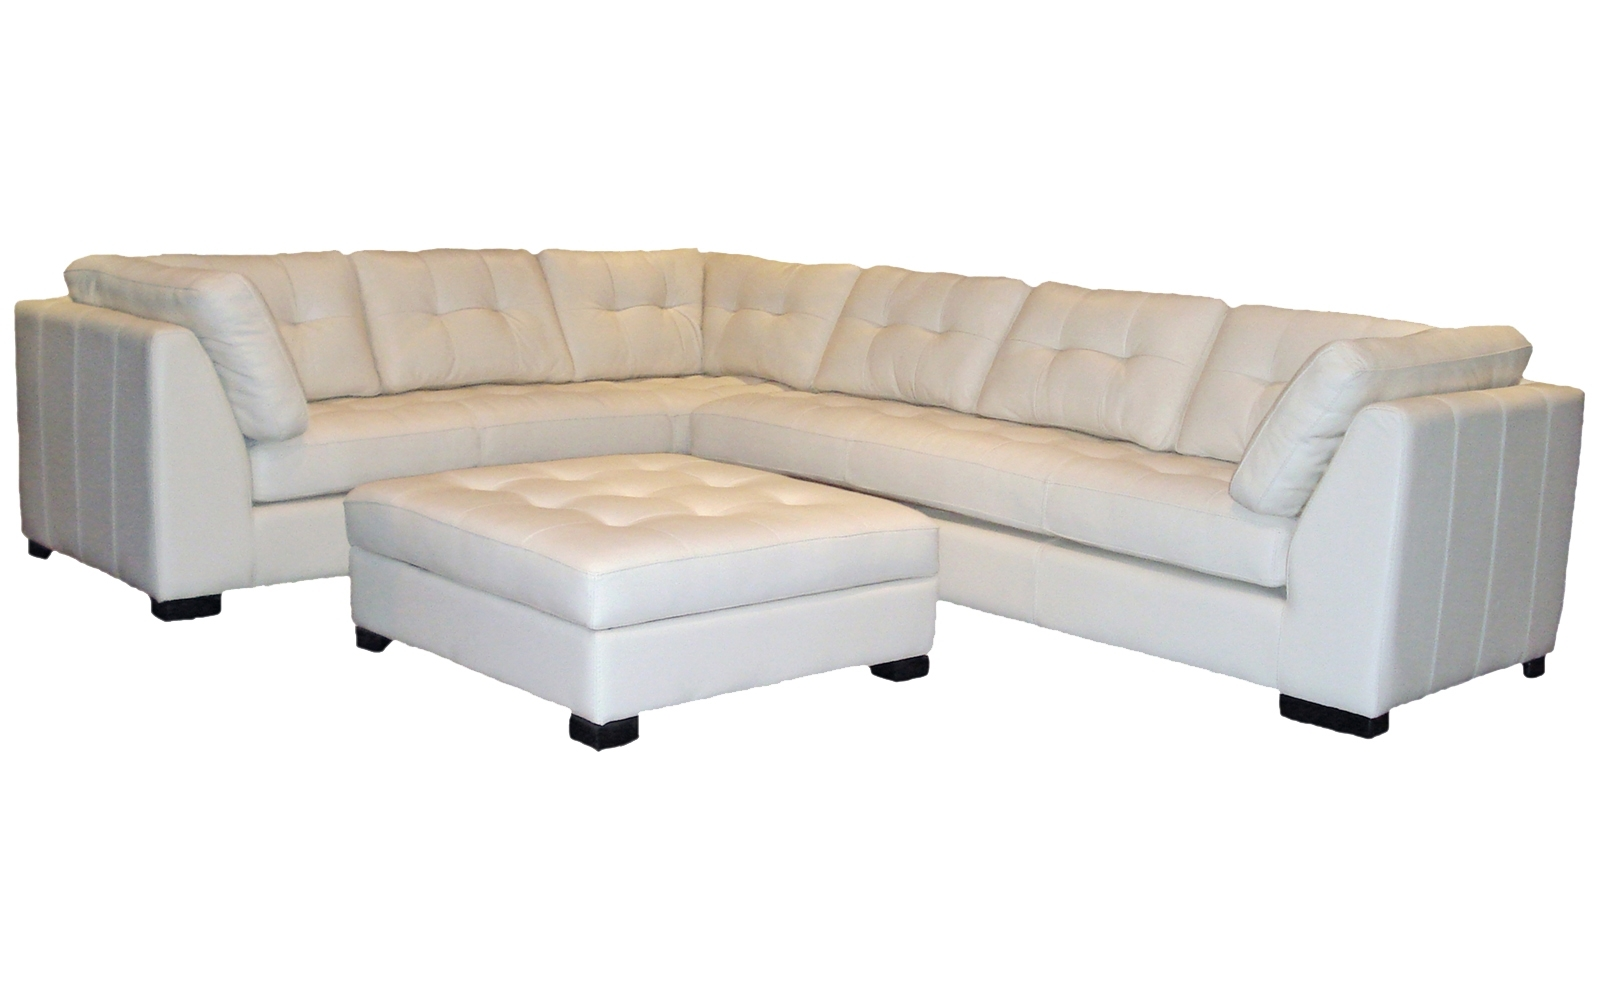 Famous Newport Sofas Throughout Newport Sectionalomnia Leather (View 8 of 15)